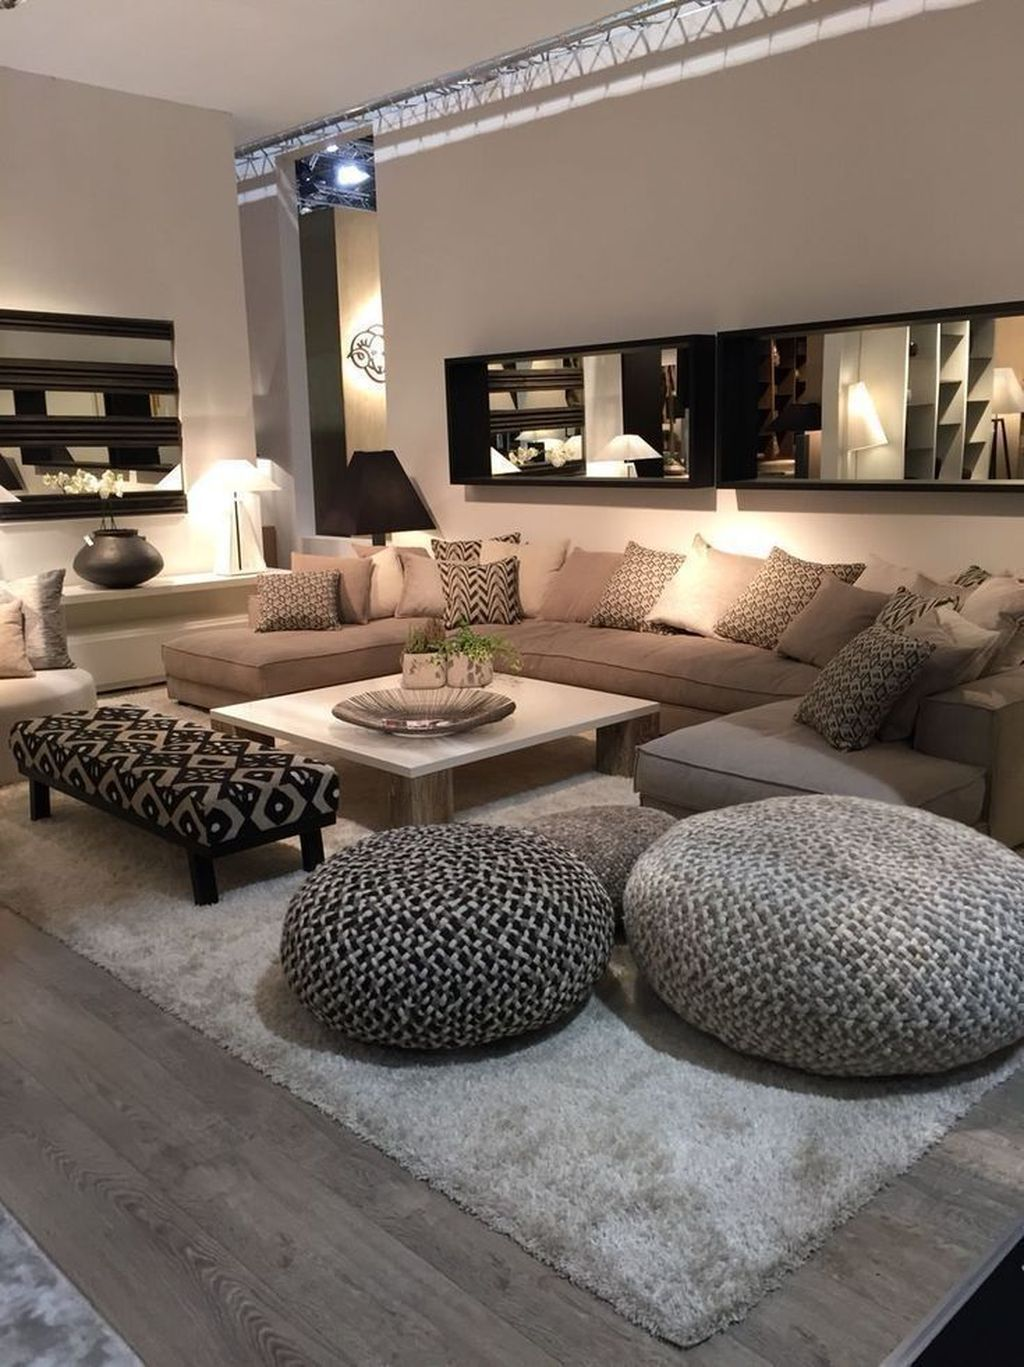 31 Admirable Modern Living Room Design Ideas You Should Copy Homyhomee Small Living Room Decor Trendy Living Rooms Farm House Living Room